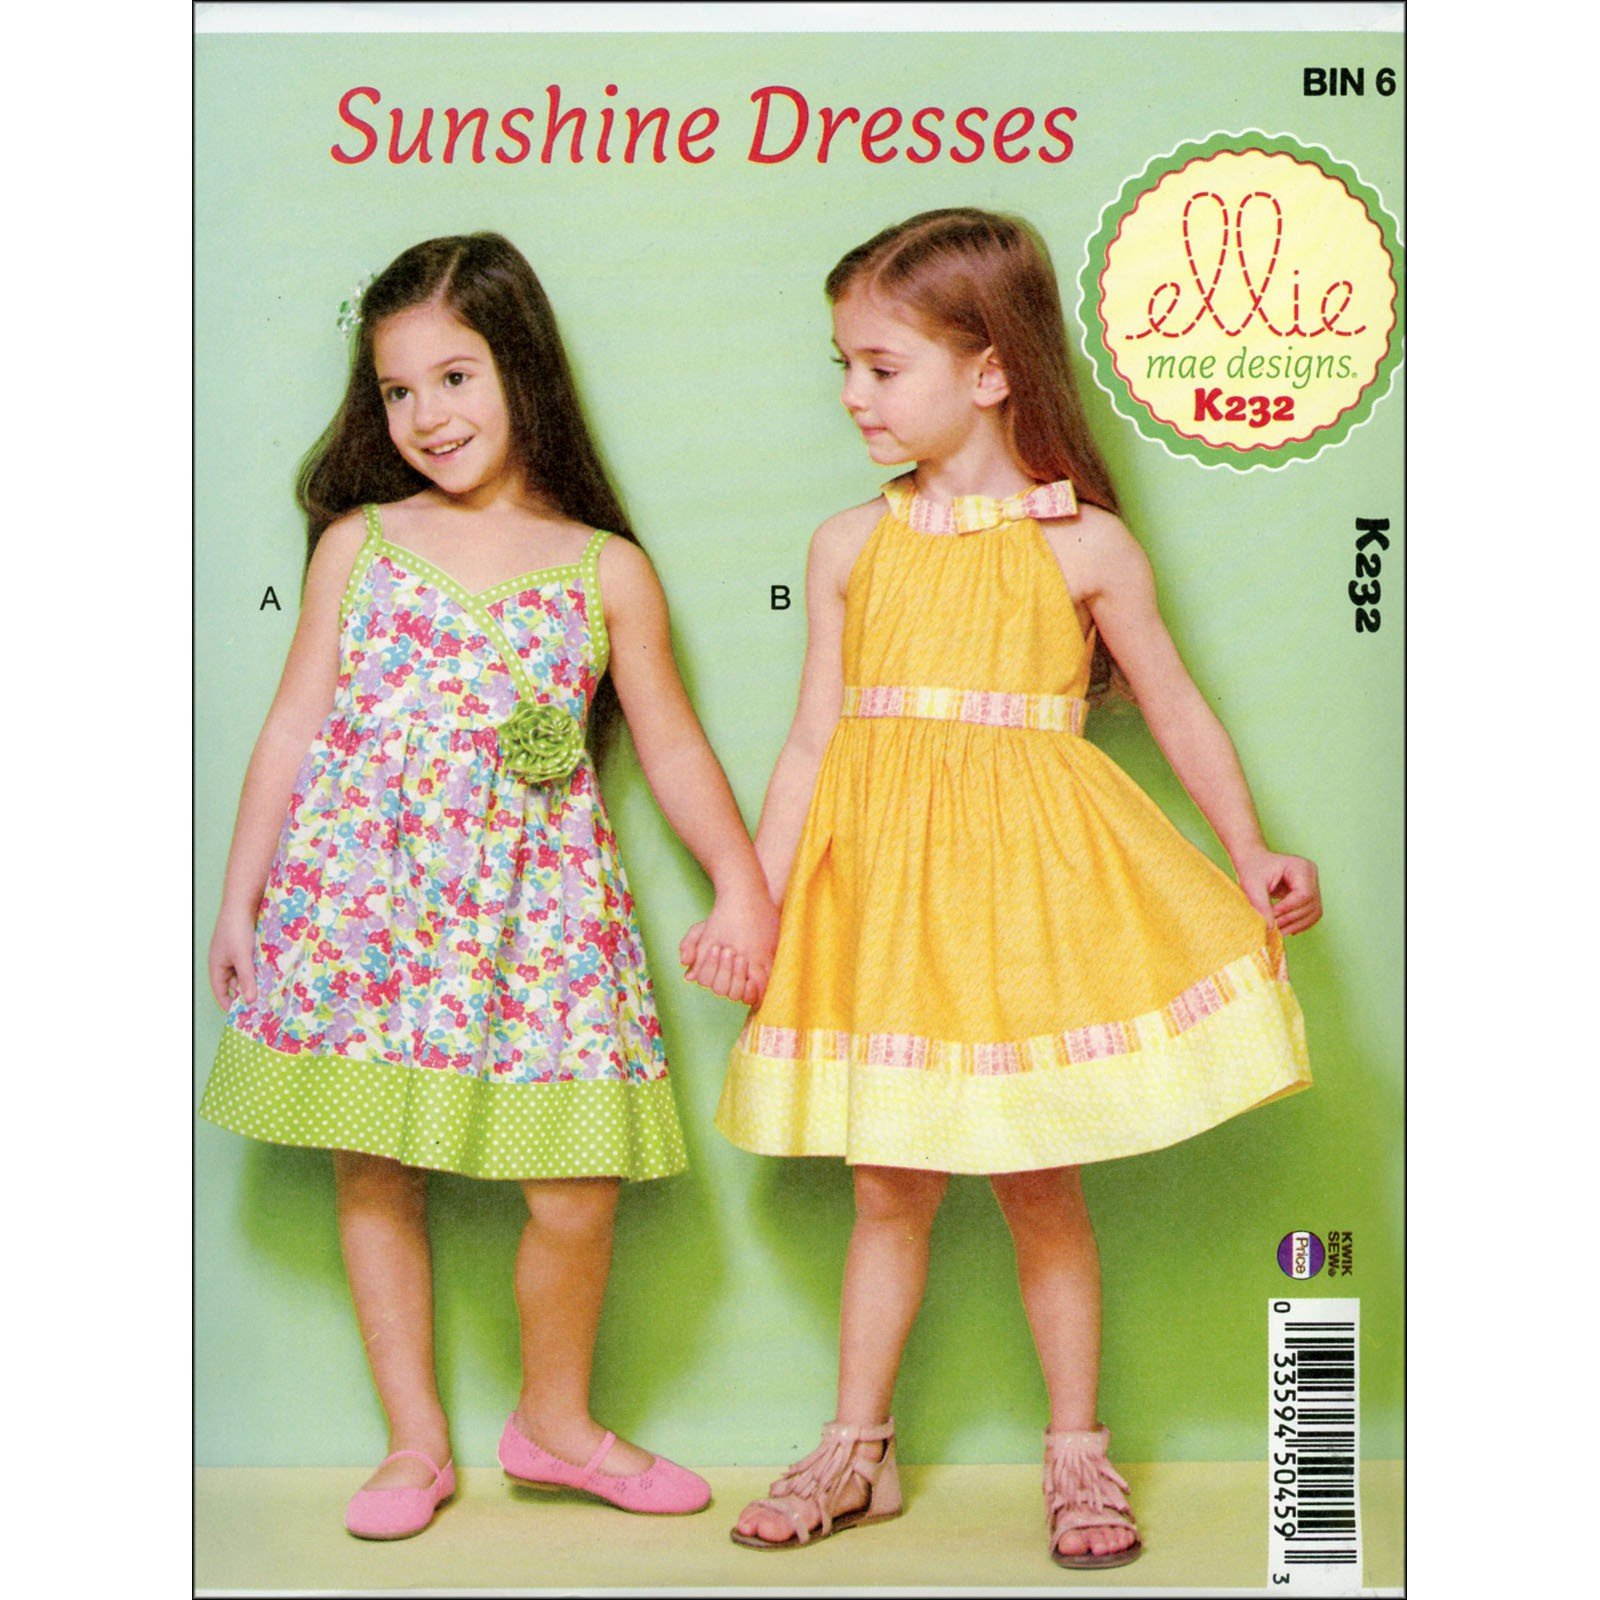 Sunshine Dresses